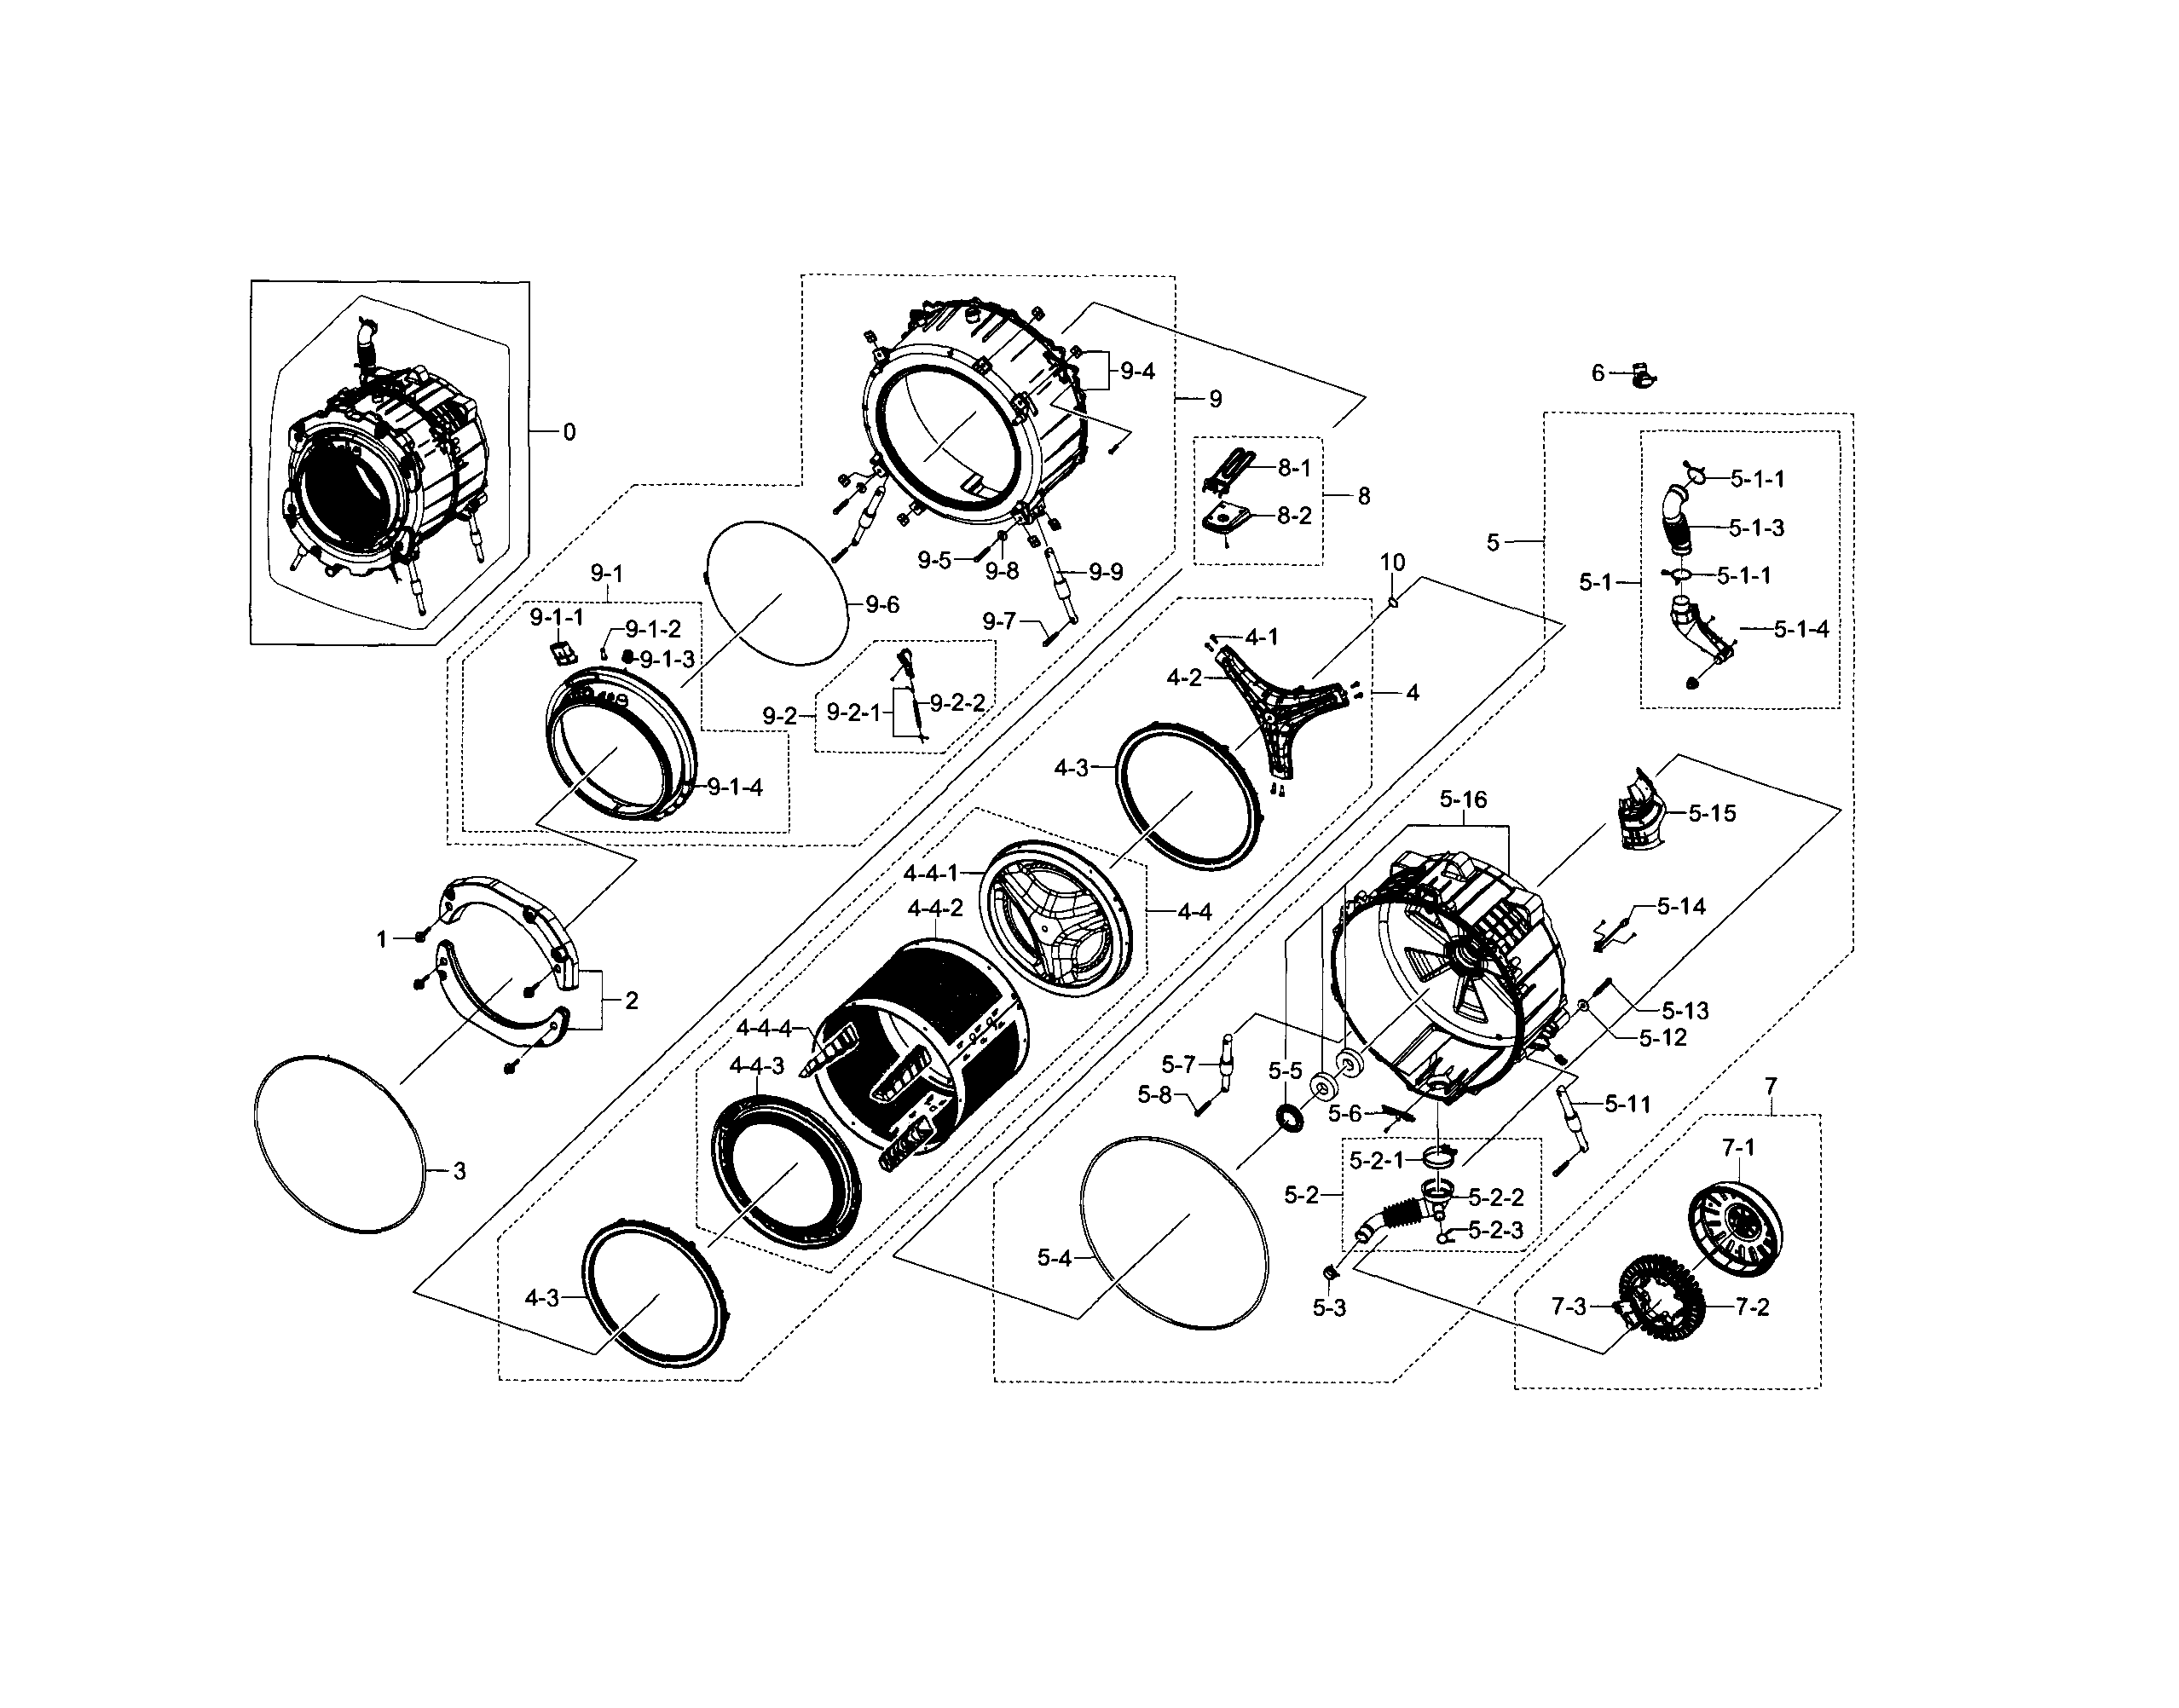 TUB & DRUM Diagram & Parts List for Model wf448aapxaa0005